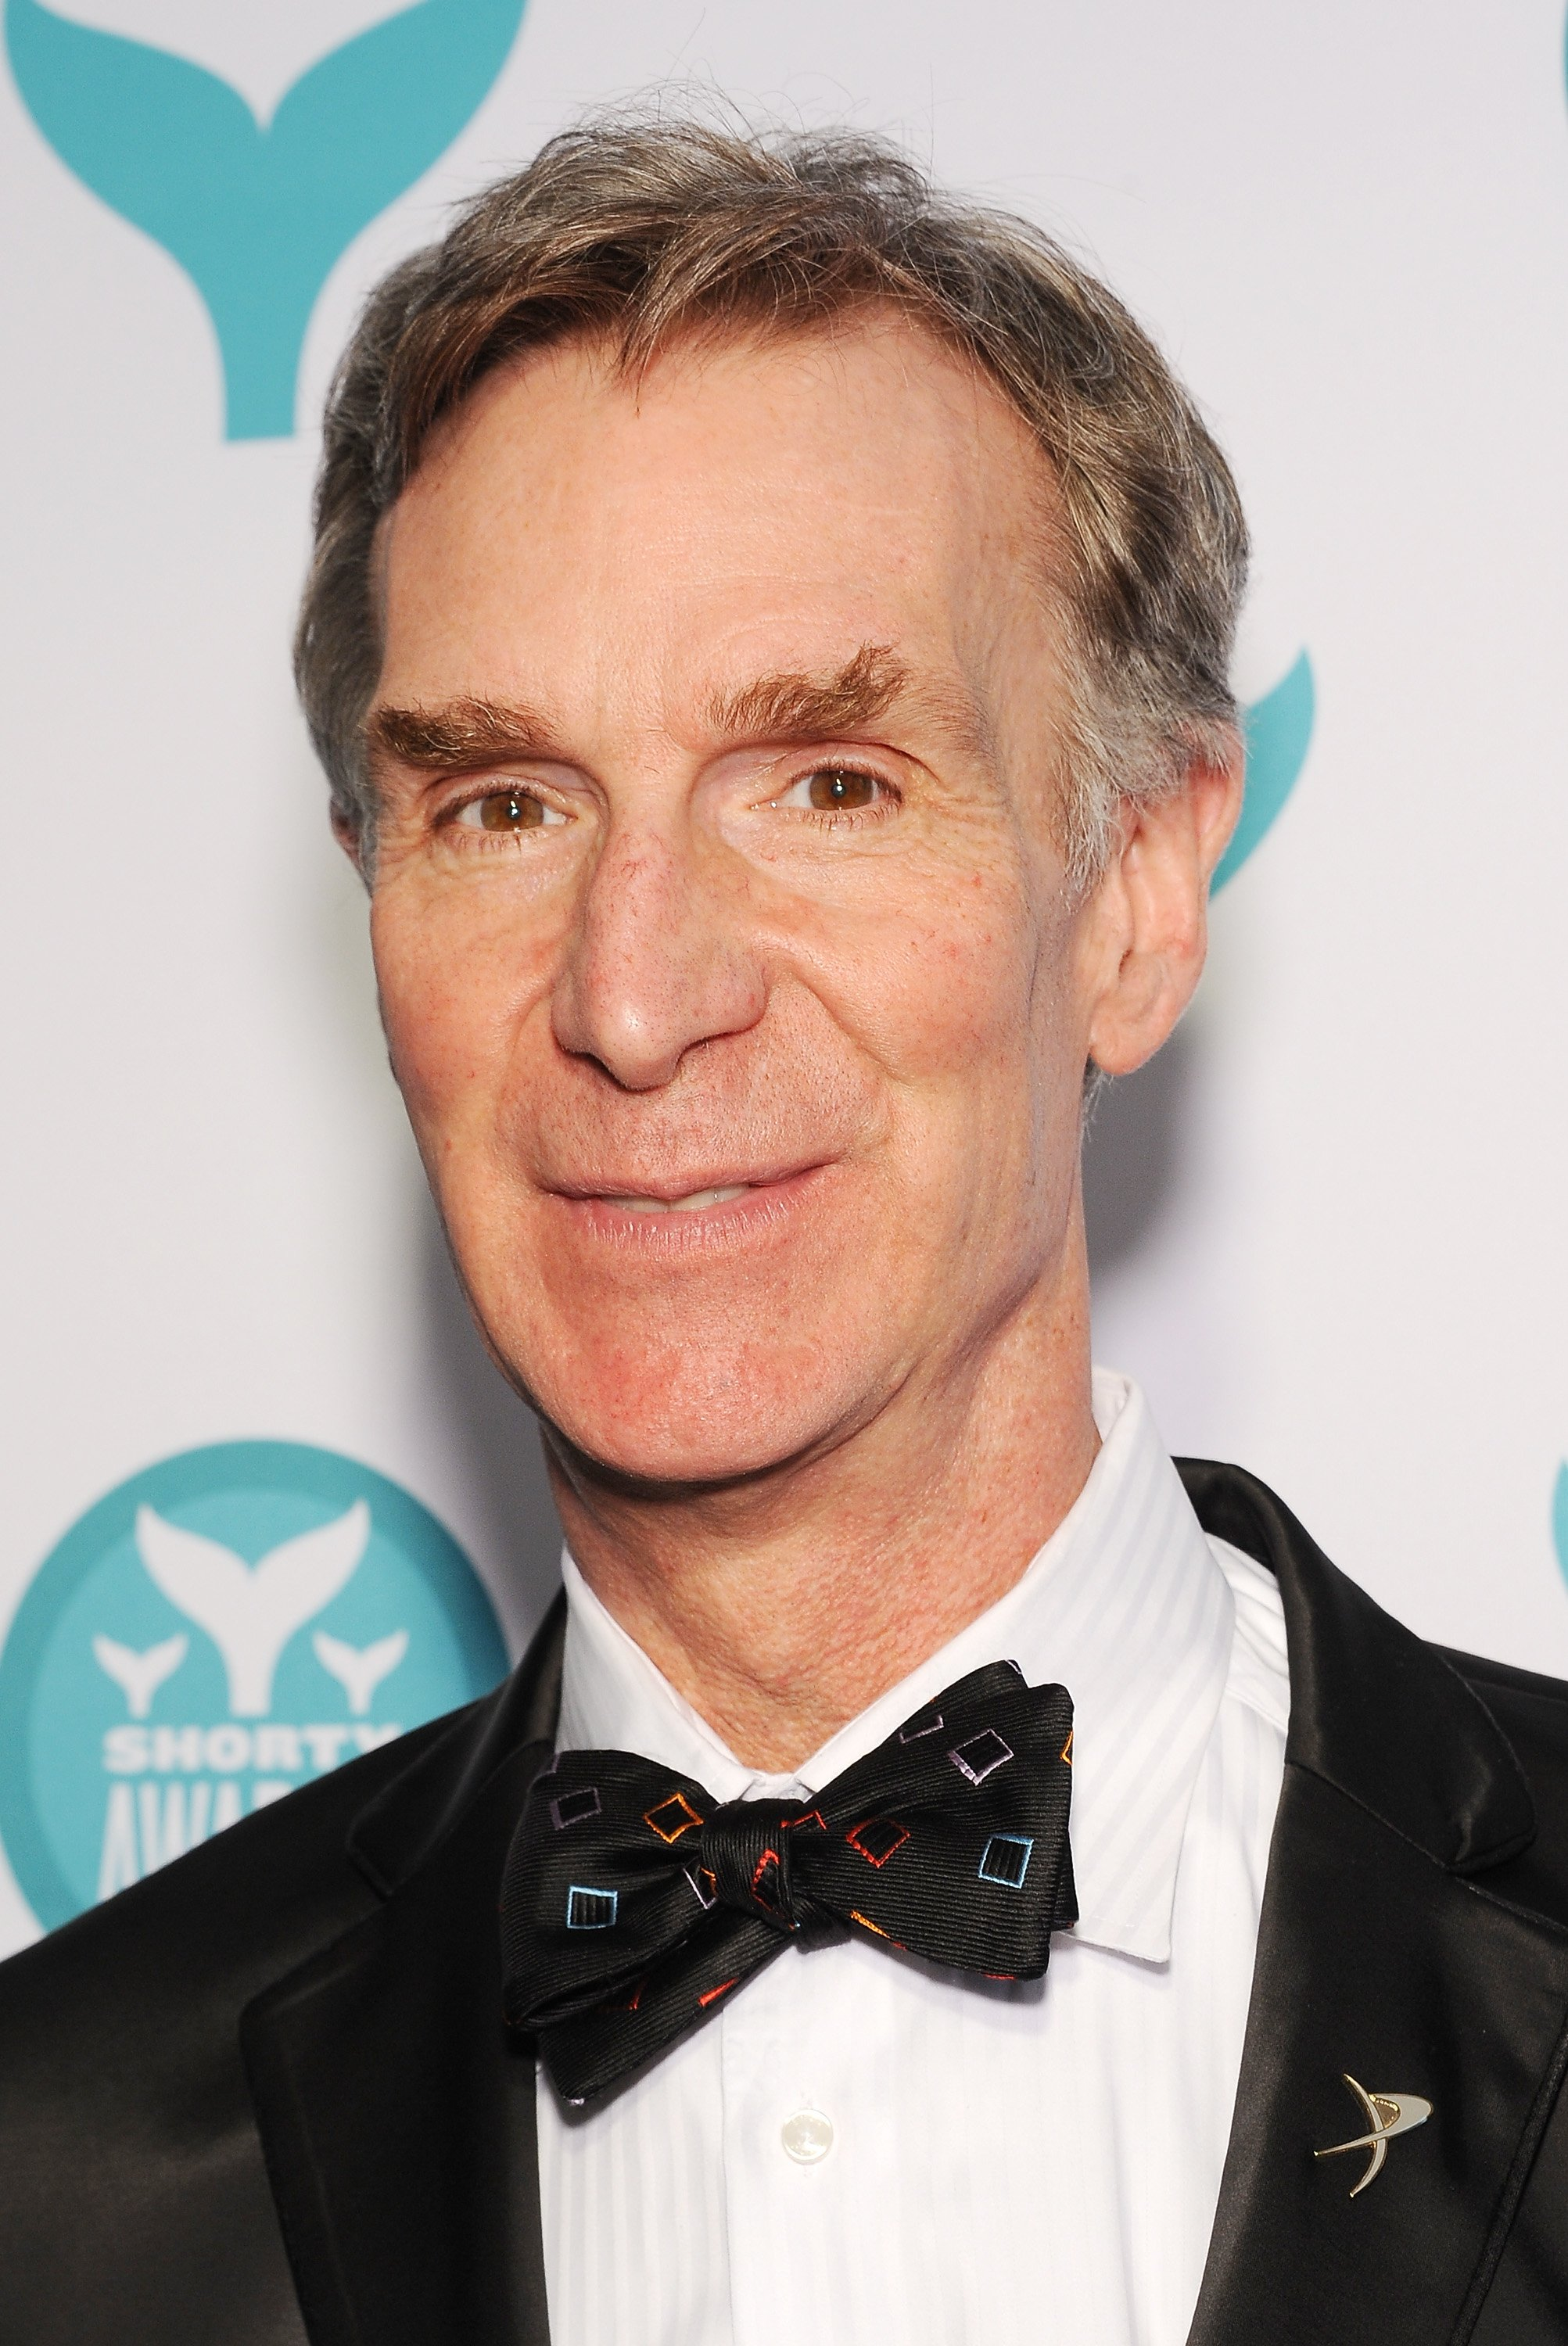 Bill Nye attends The 7th Annual Shorty Awards on April 20, 2015 in New York City.